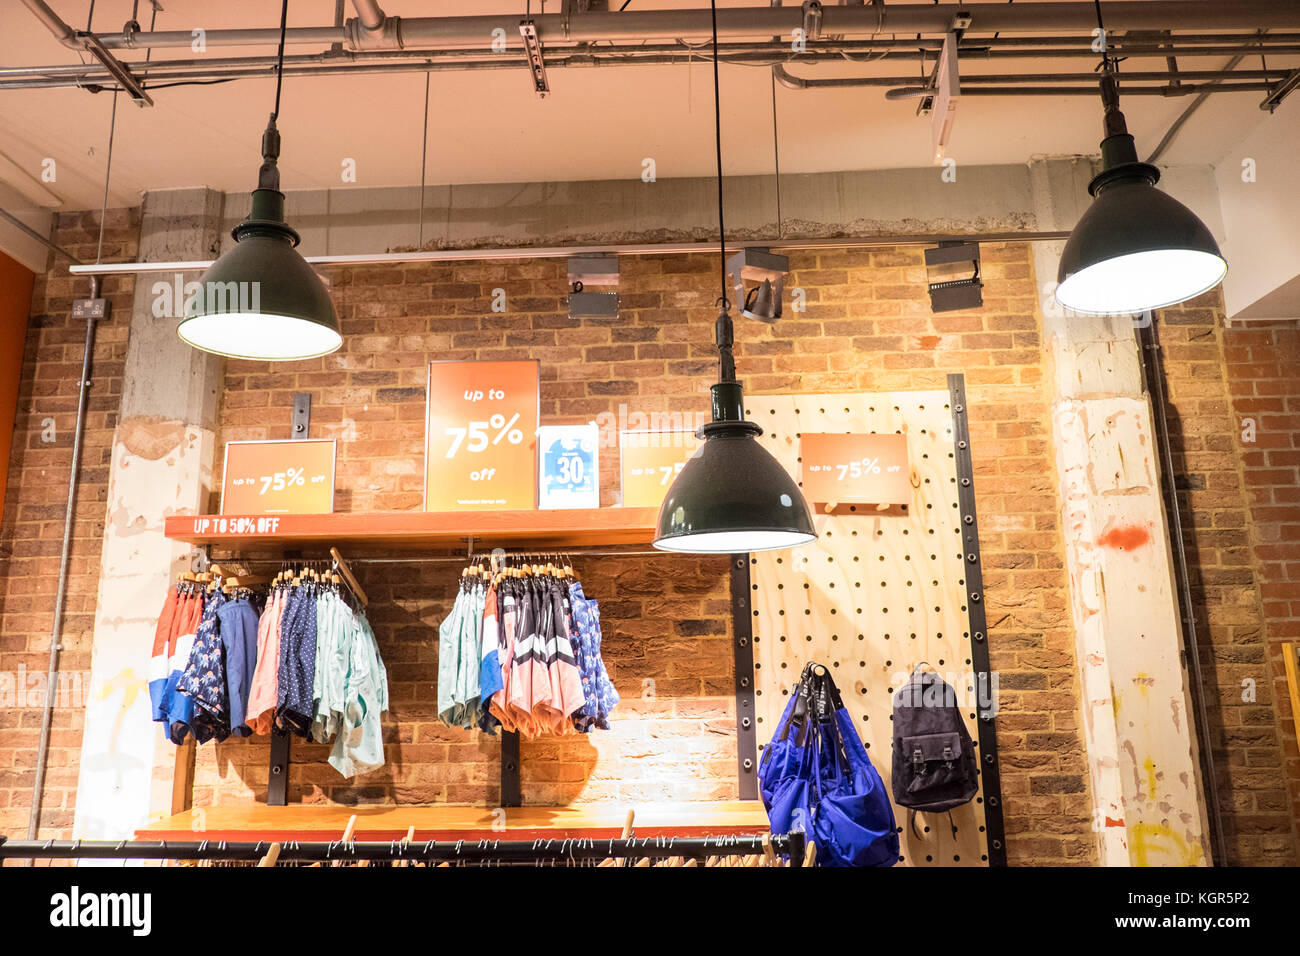 Urban outfitters store a vintage industriali stile design